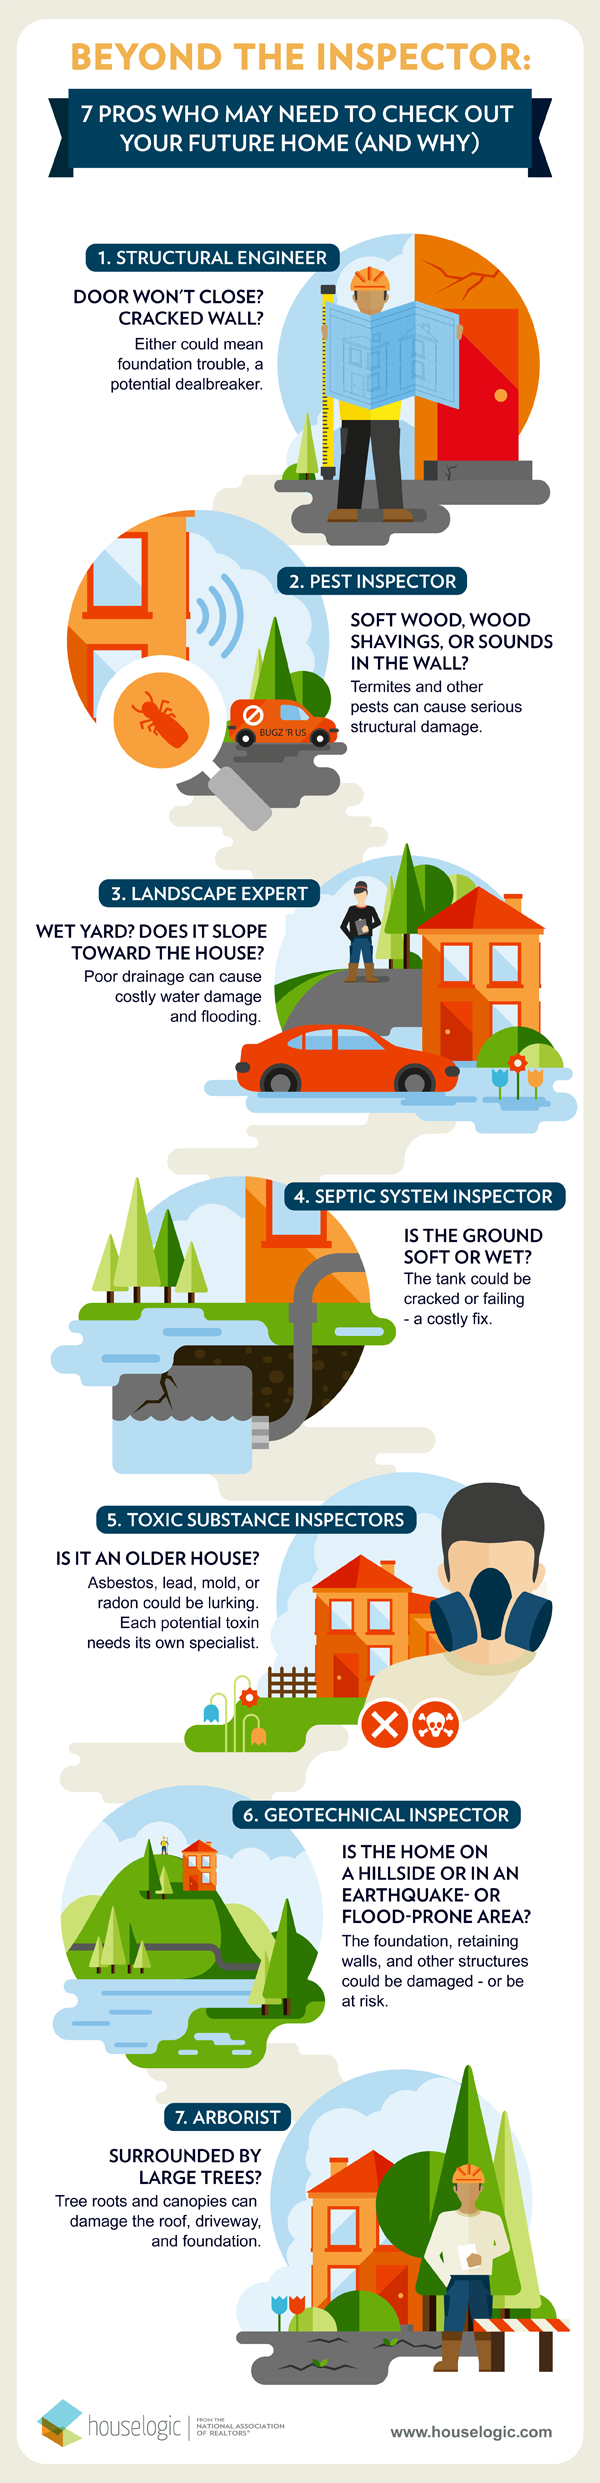 field guide to home inspections | nar.realtor